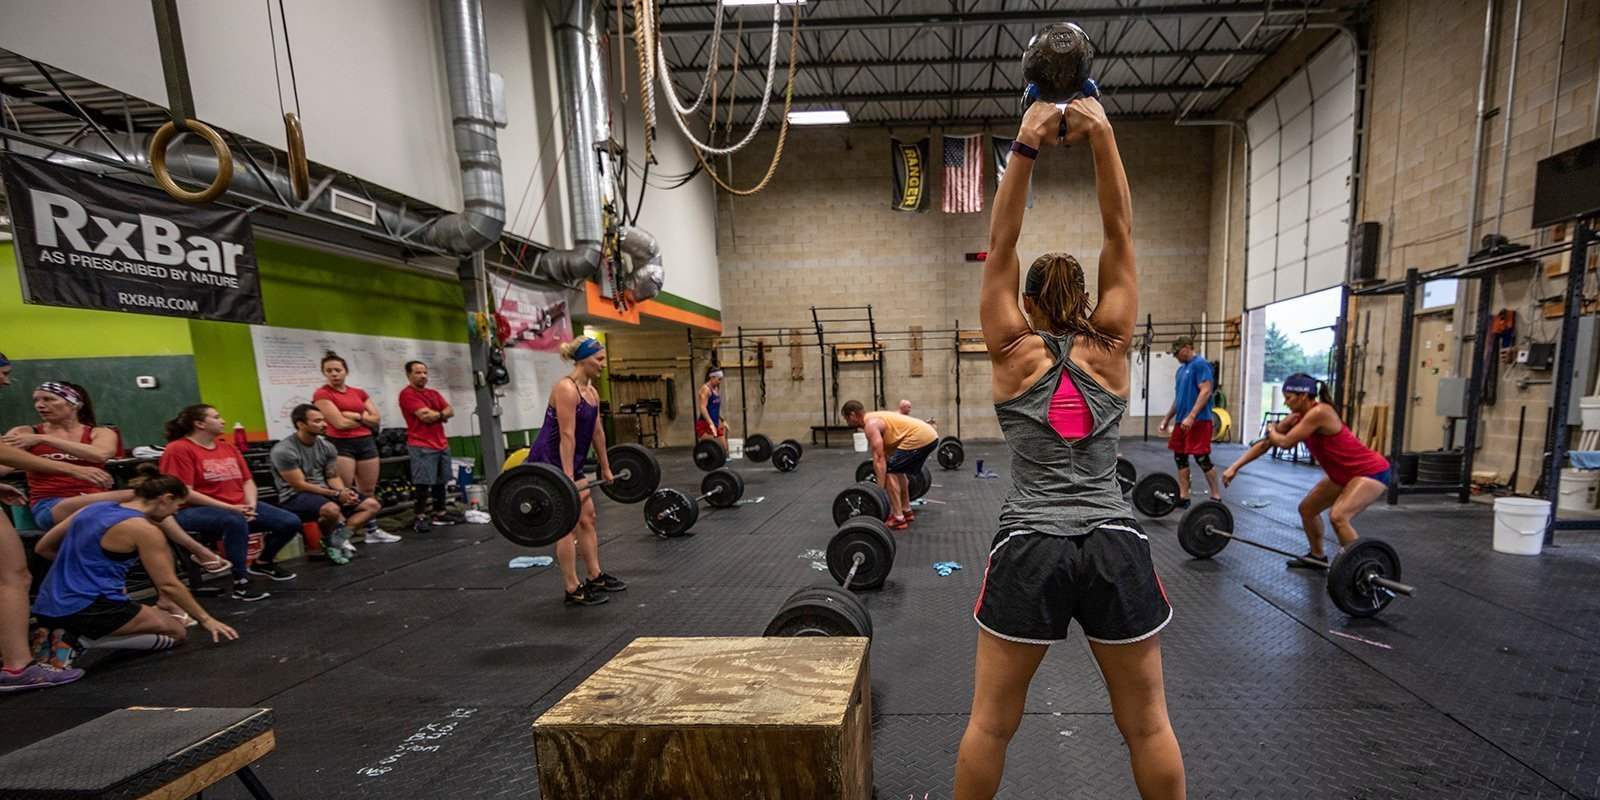 About crossfit woodbury